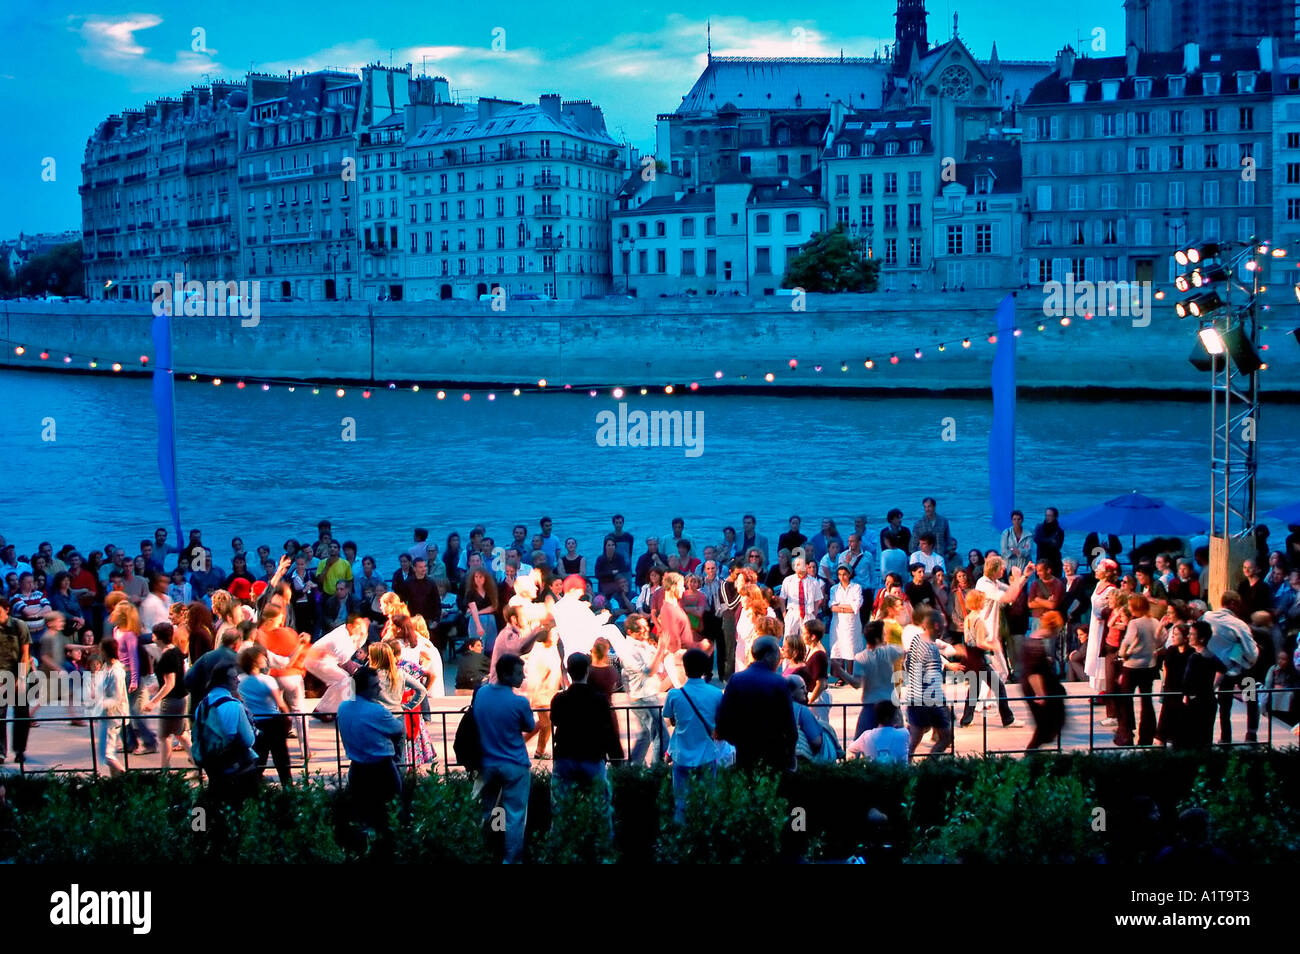 Paris France, Group of Mixed French Adults Dancing on River Seine plage, Bank, at 'Paris Plages' Summer Festival at Dusk, paris beach seine - Stock Image